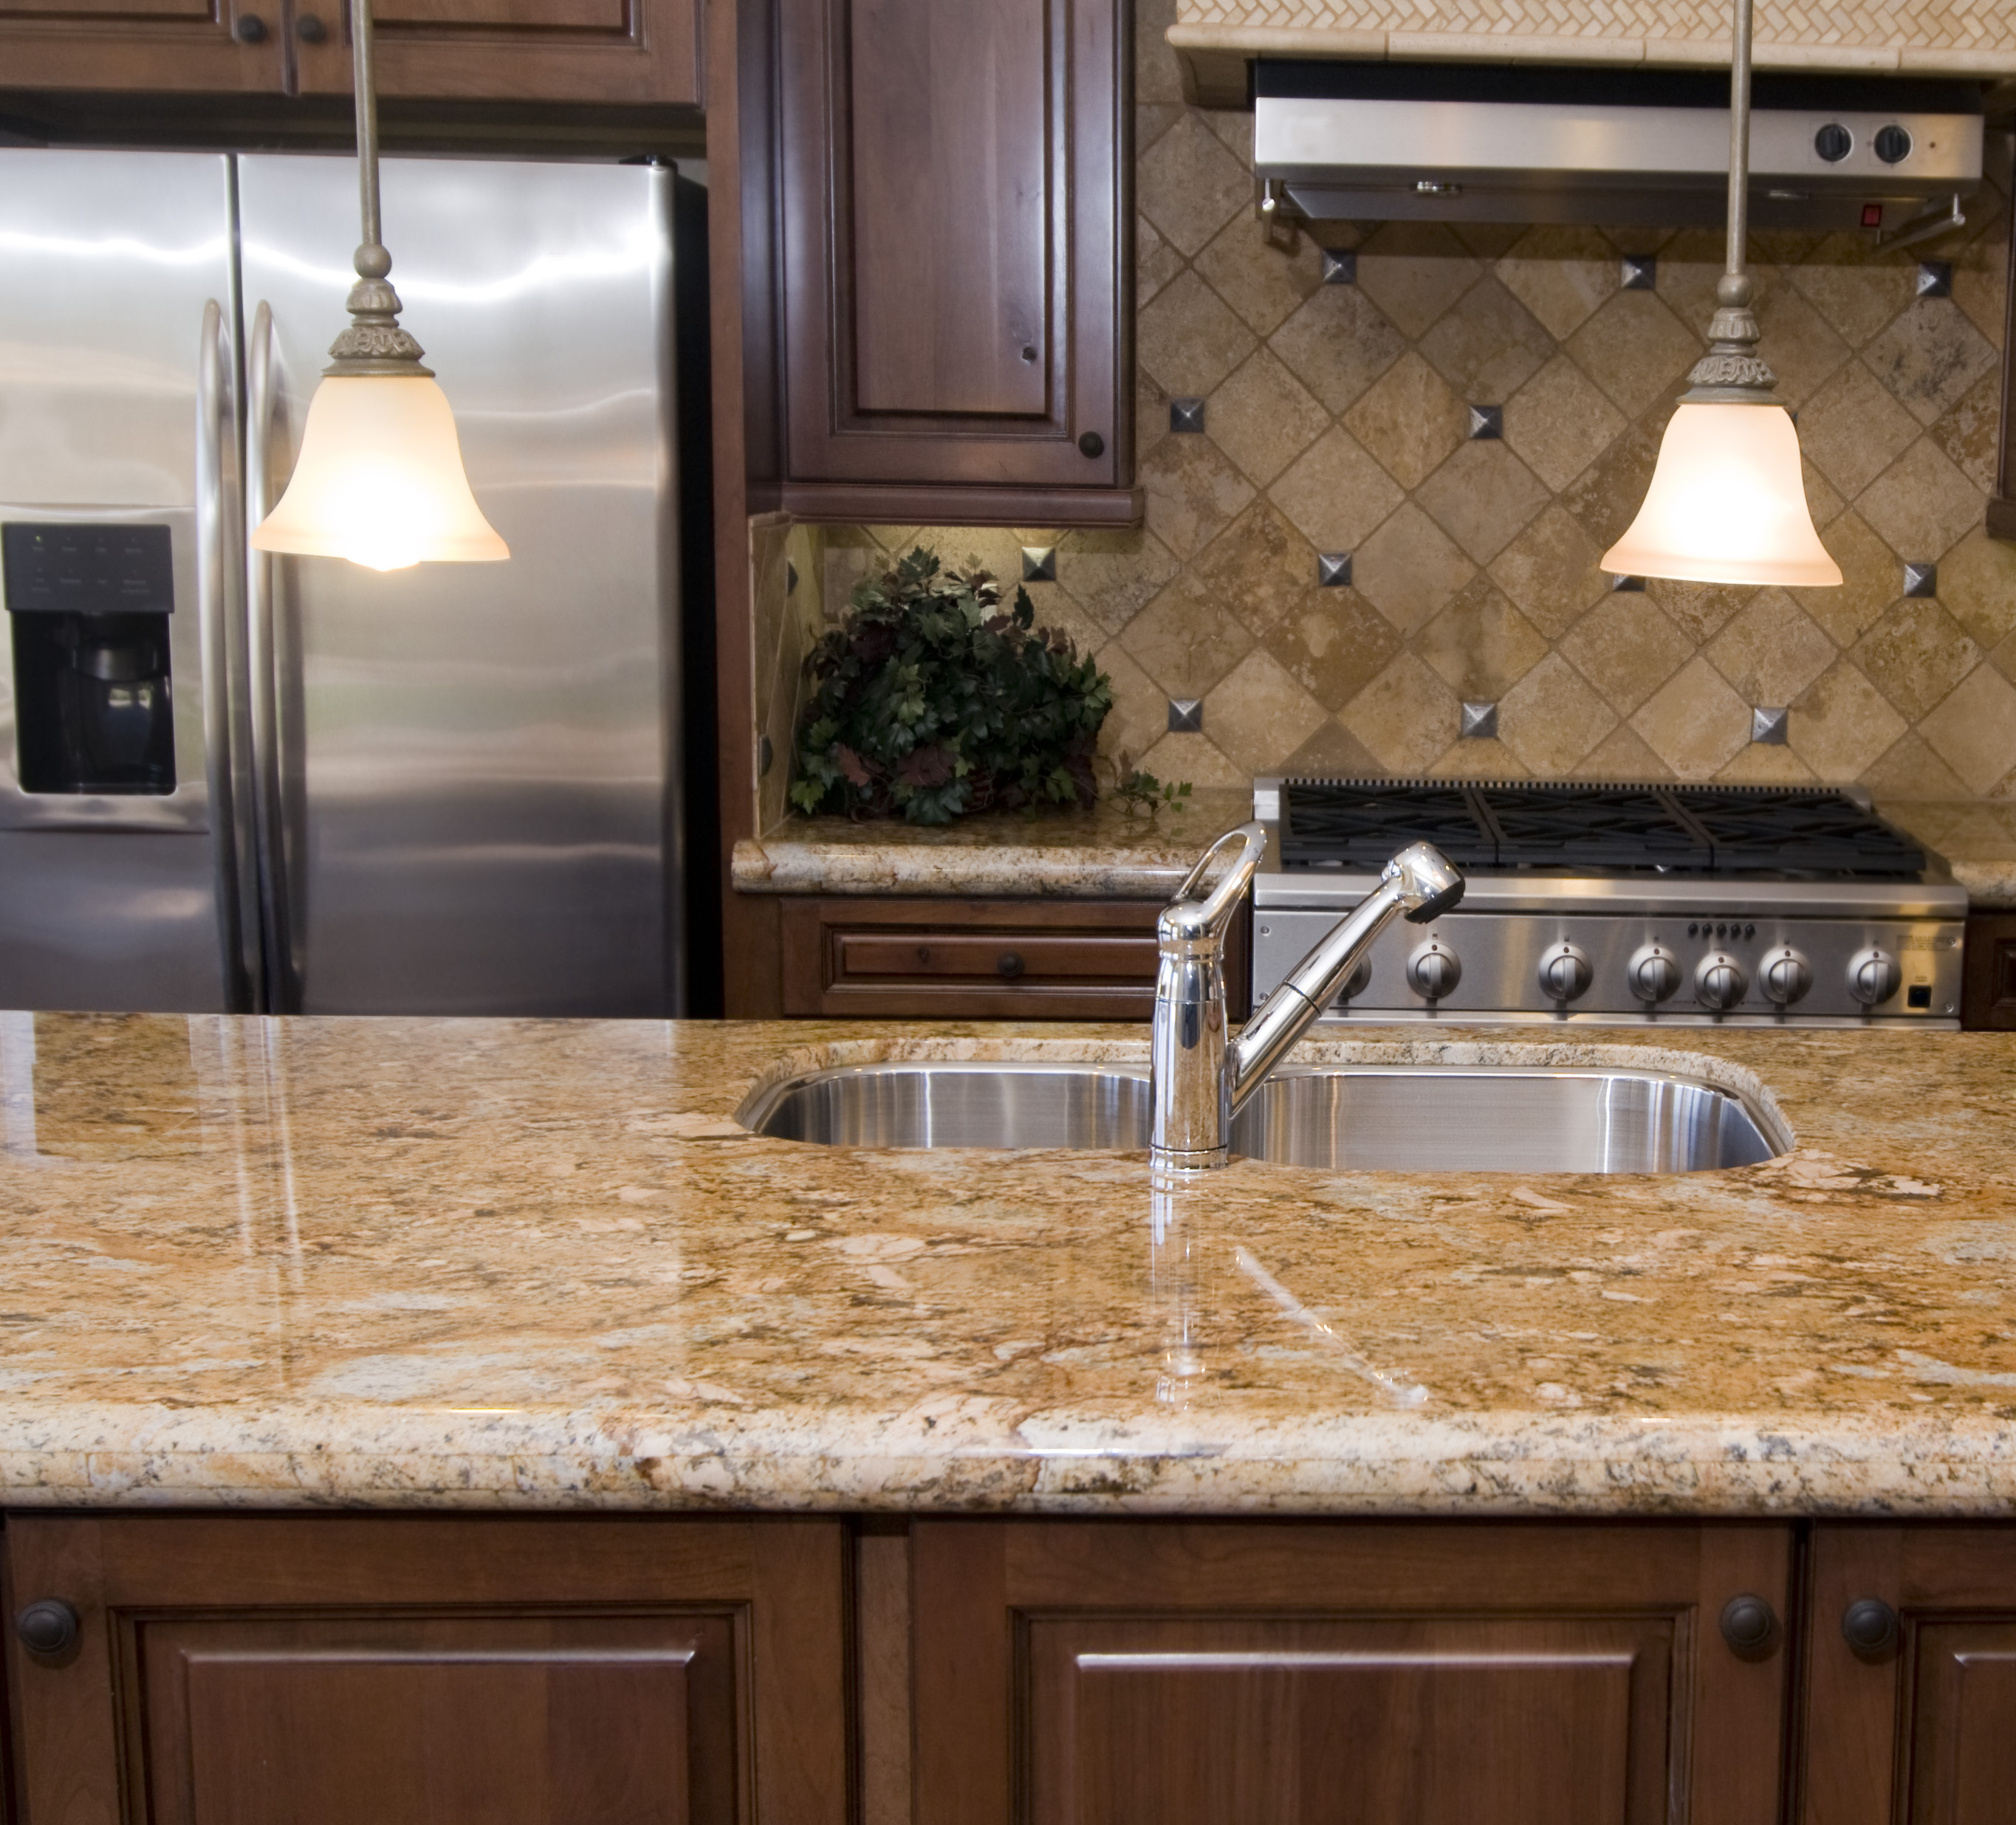 Charming Kitchen Island With Wilsonart Laminate Countertops And Sin Plus Faucet For Kitchen Decor Ideas